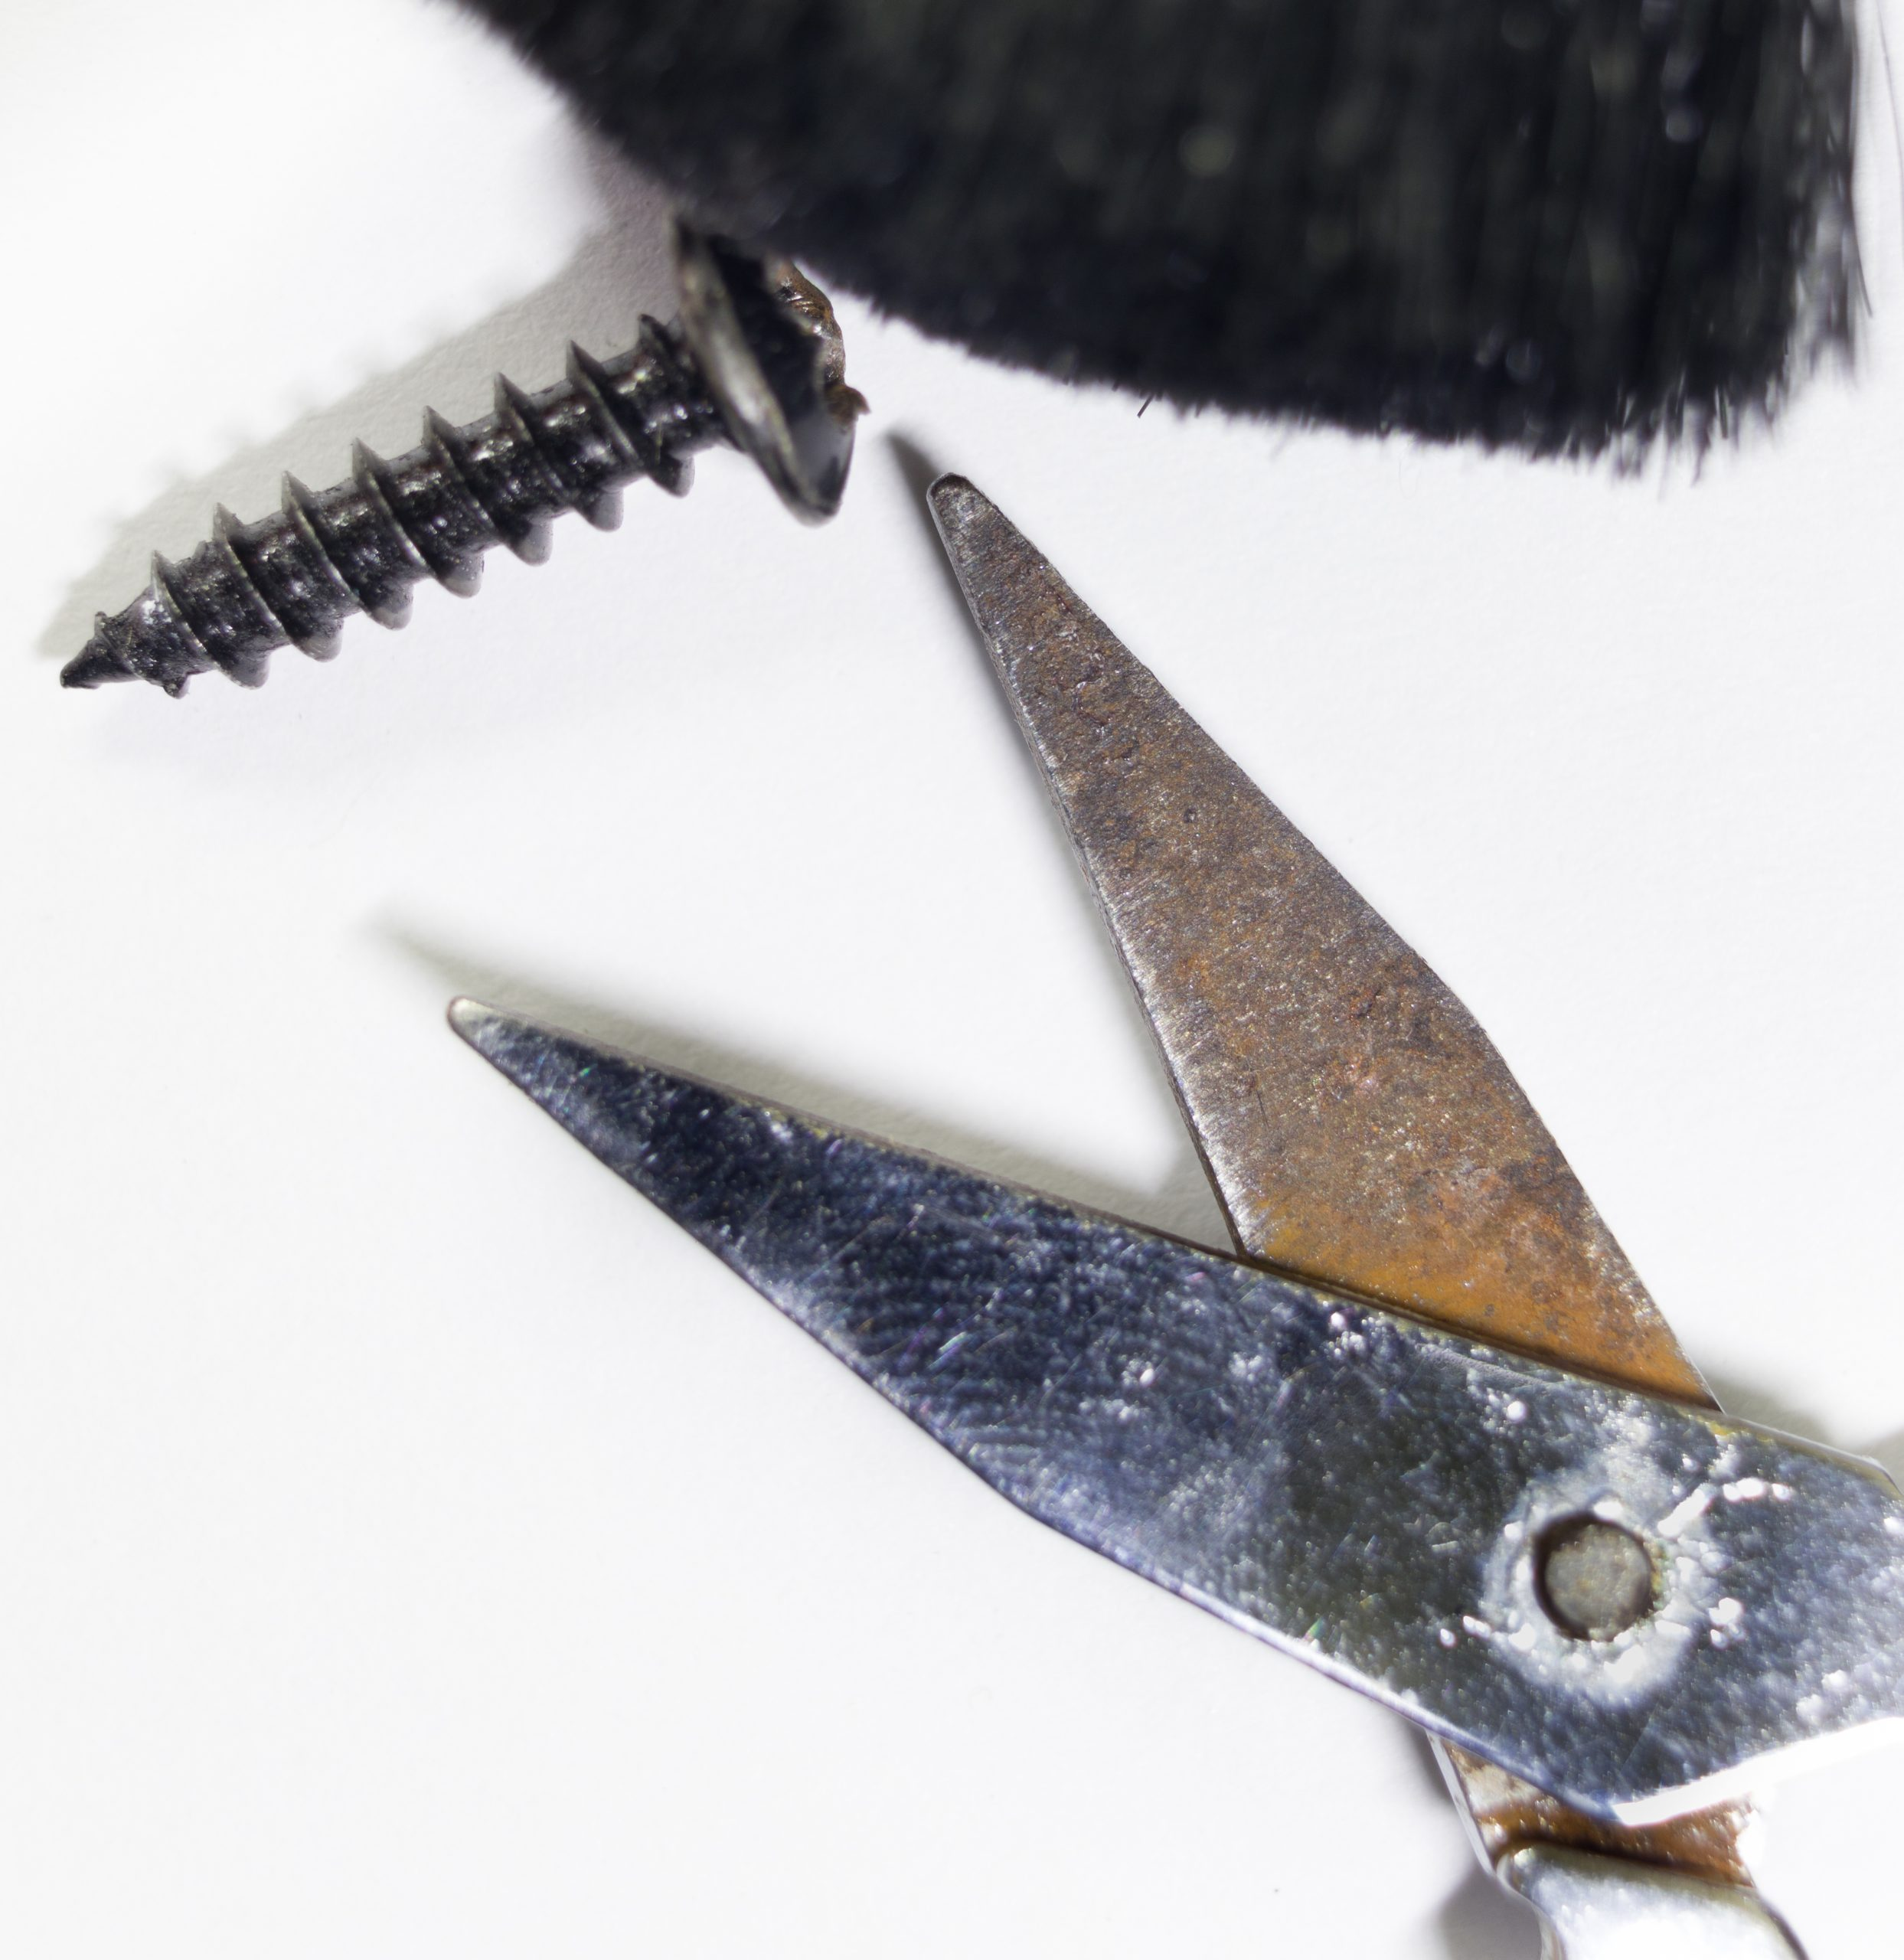 Portrait of a screw and a scissor